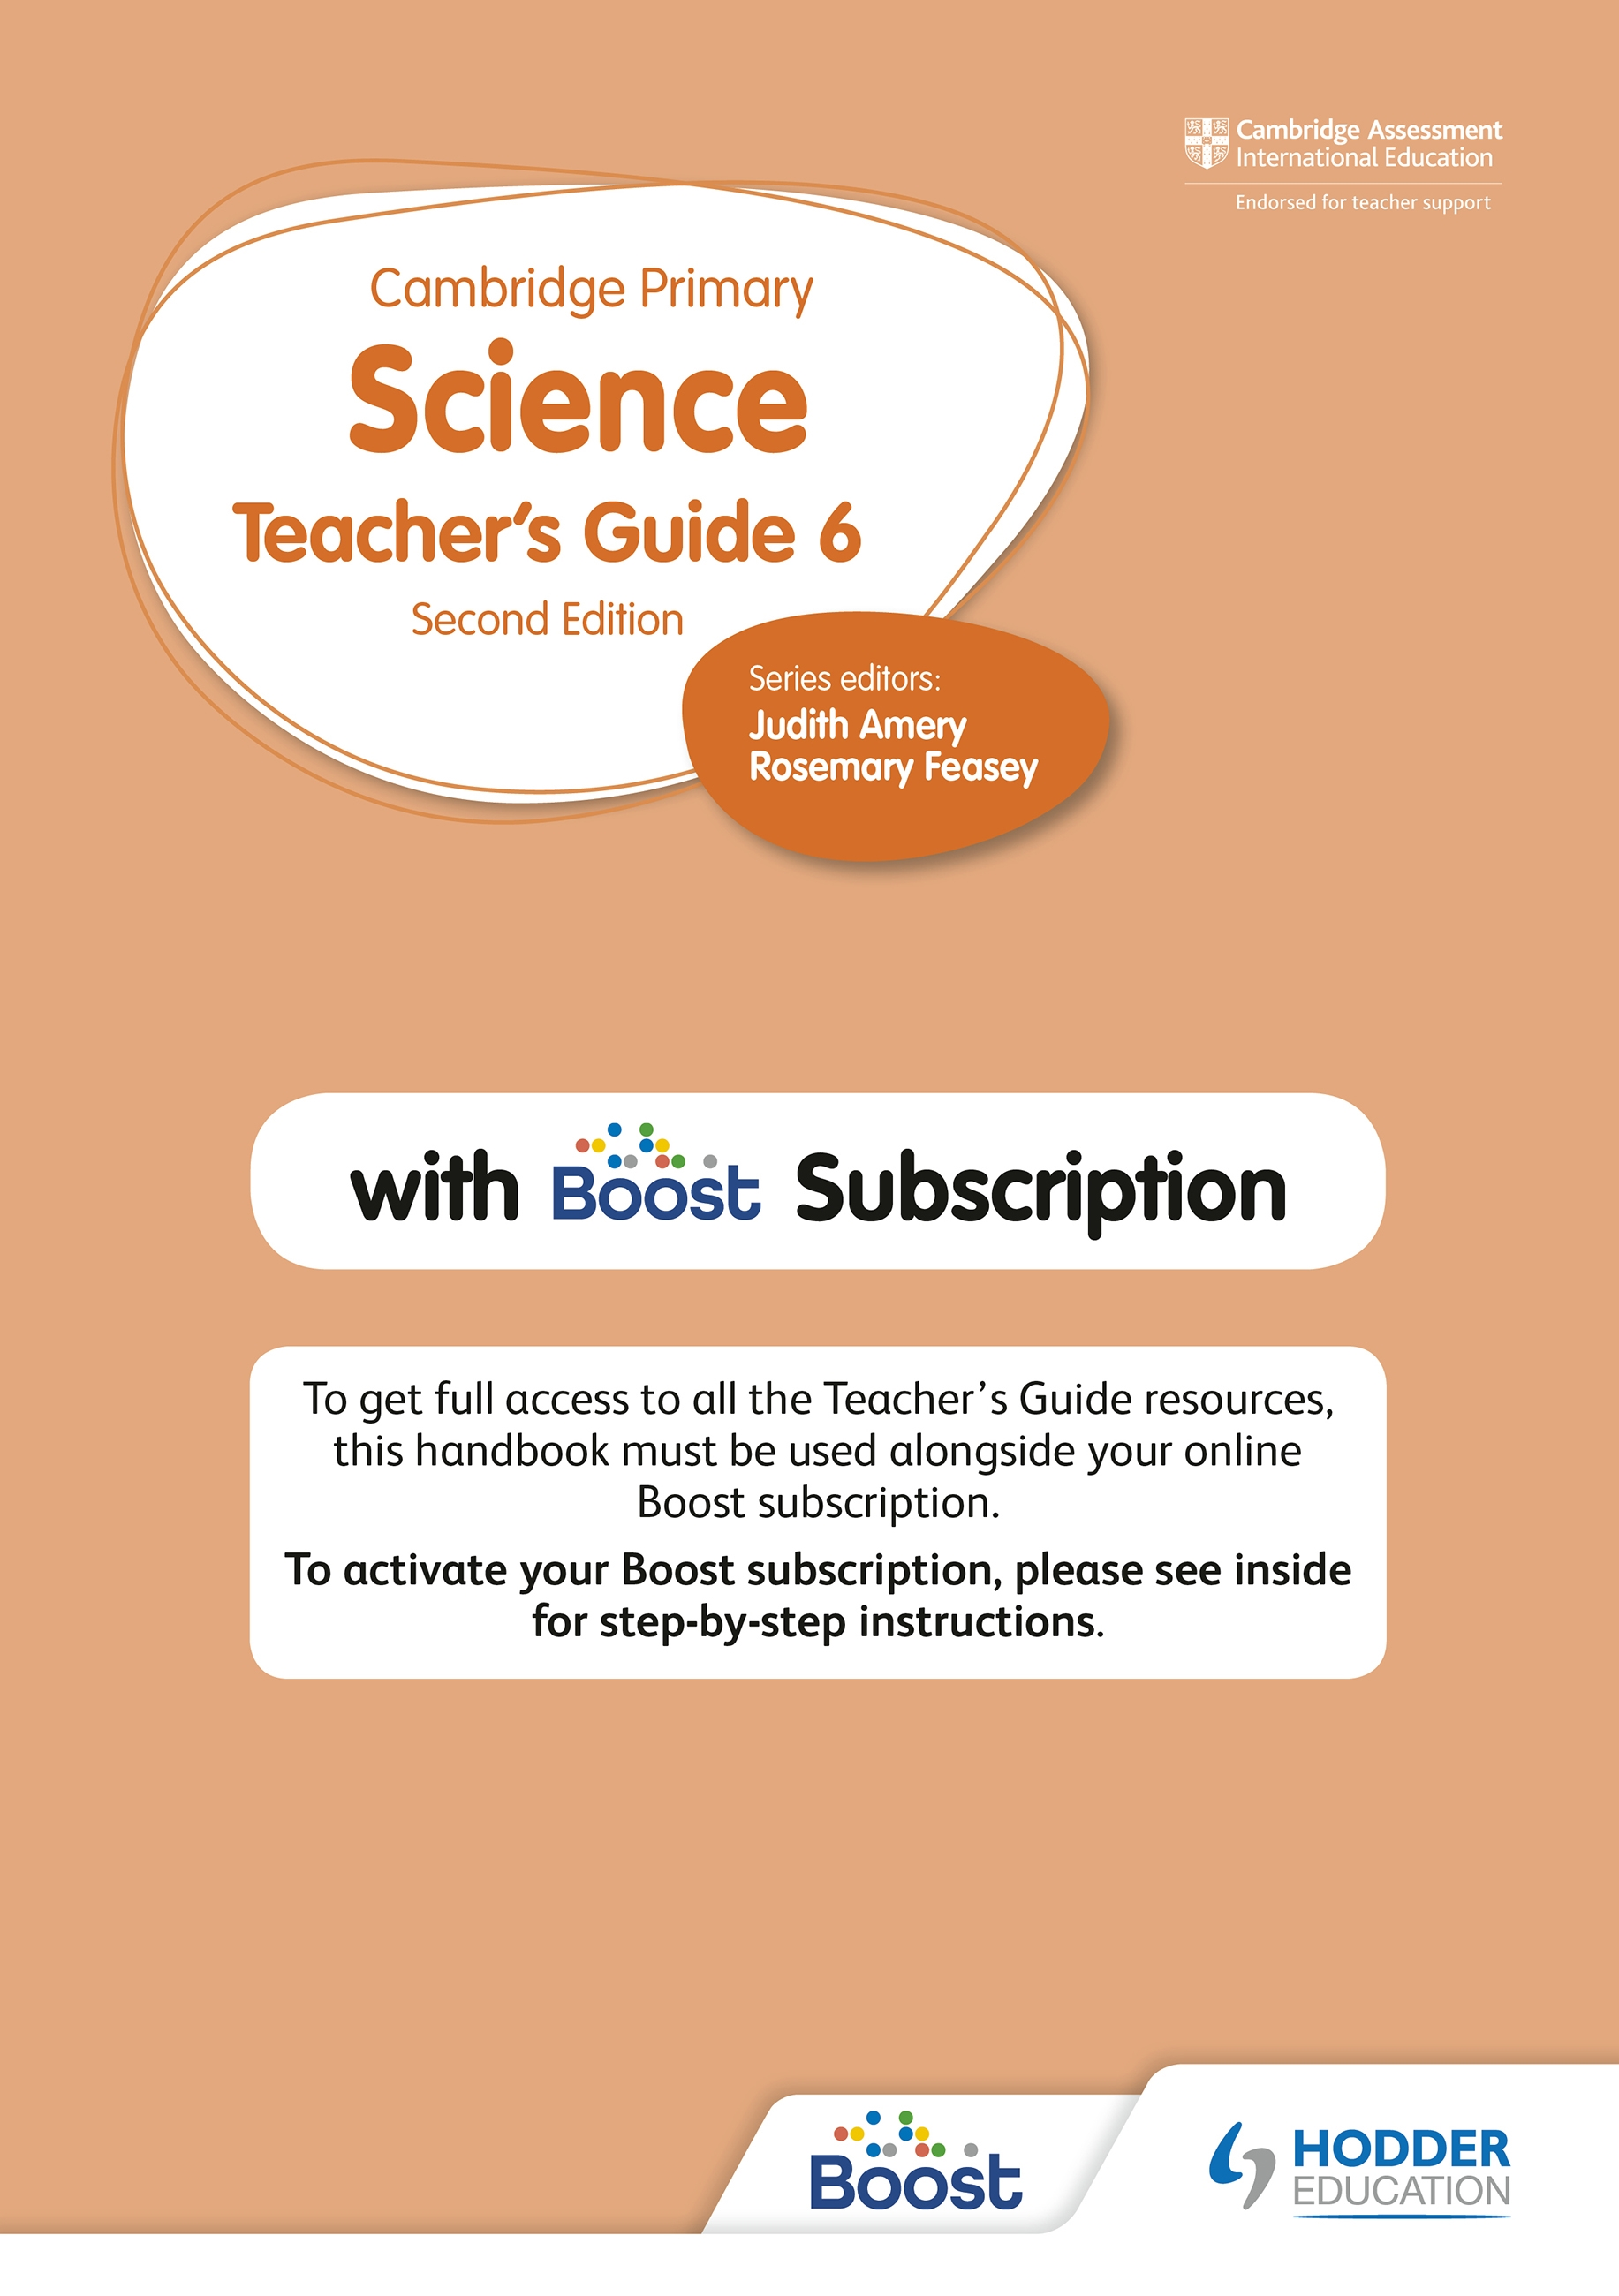 Cambridge Primary Science Teacher's Guide 6 with Boost Subscription